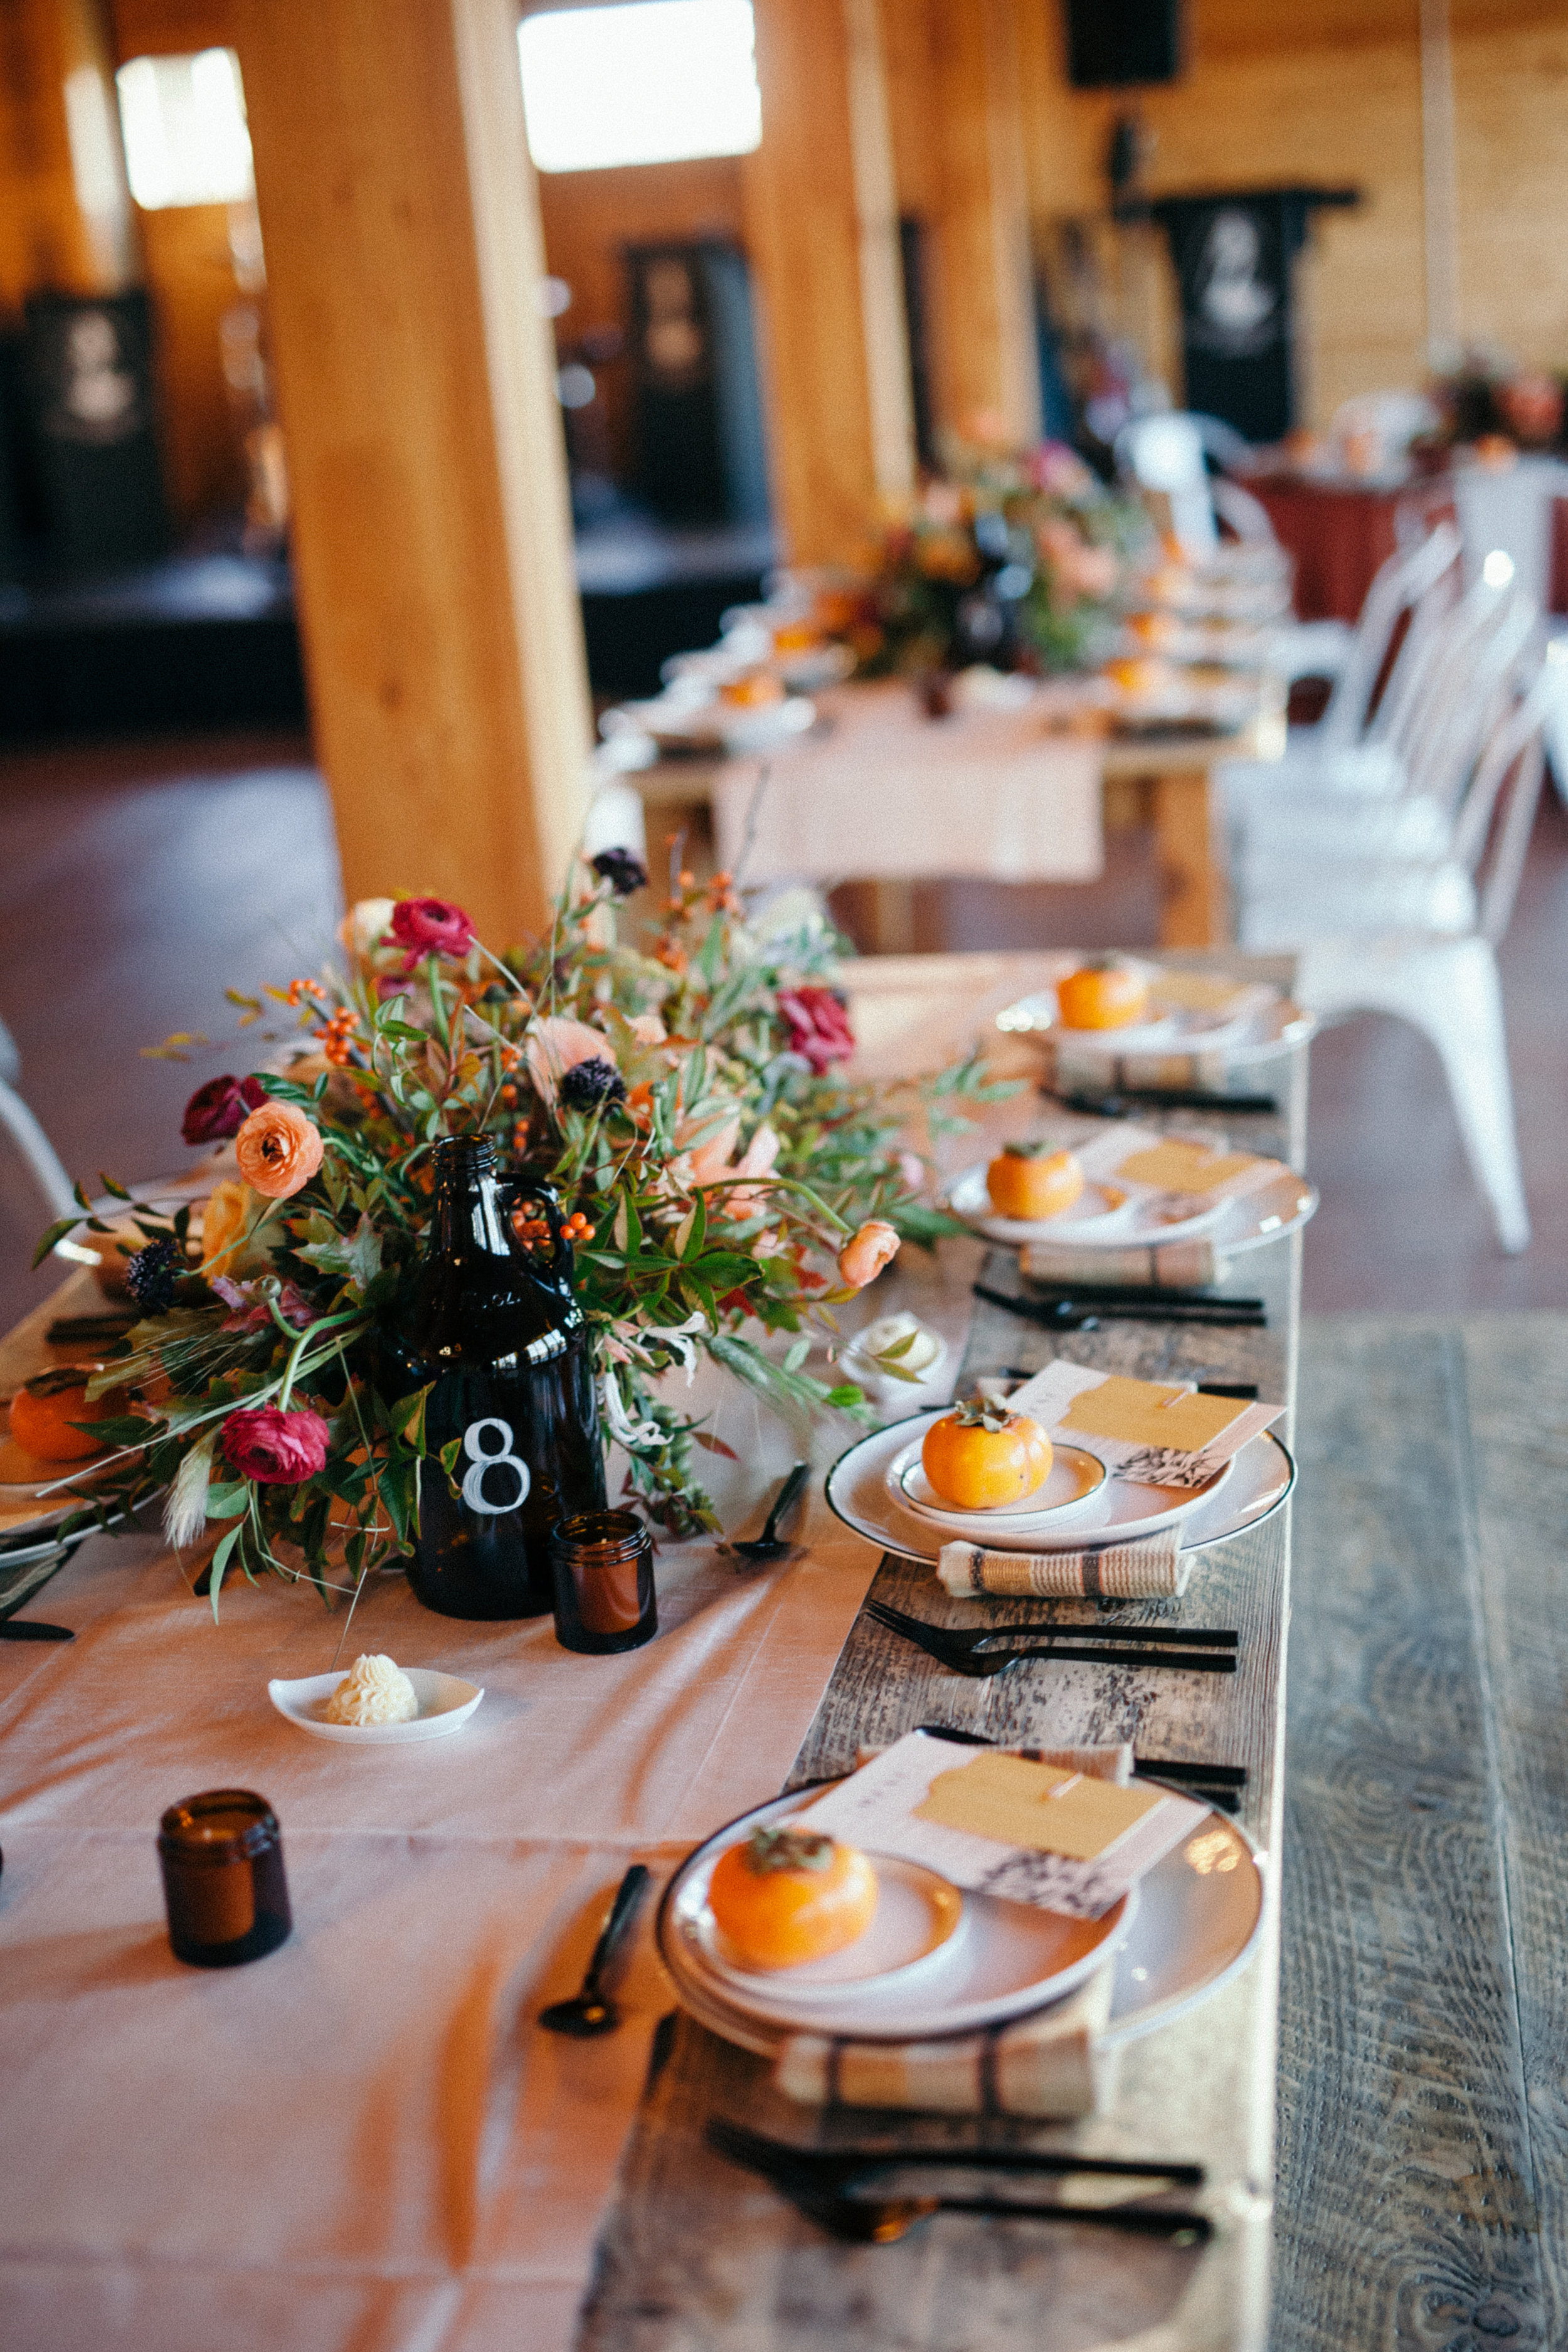 We absolutely adored each detail of this tablescape!